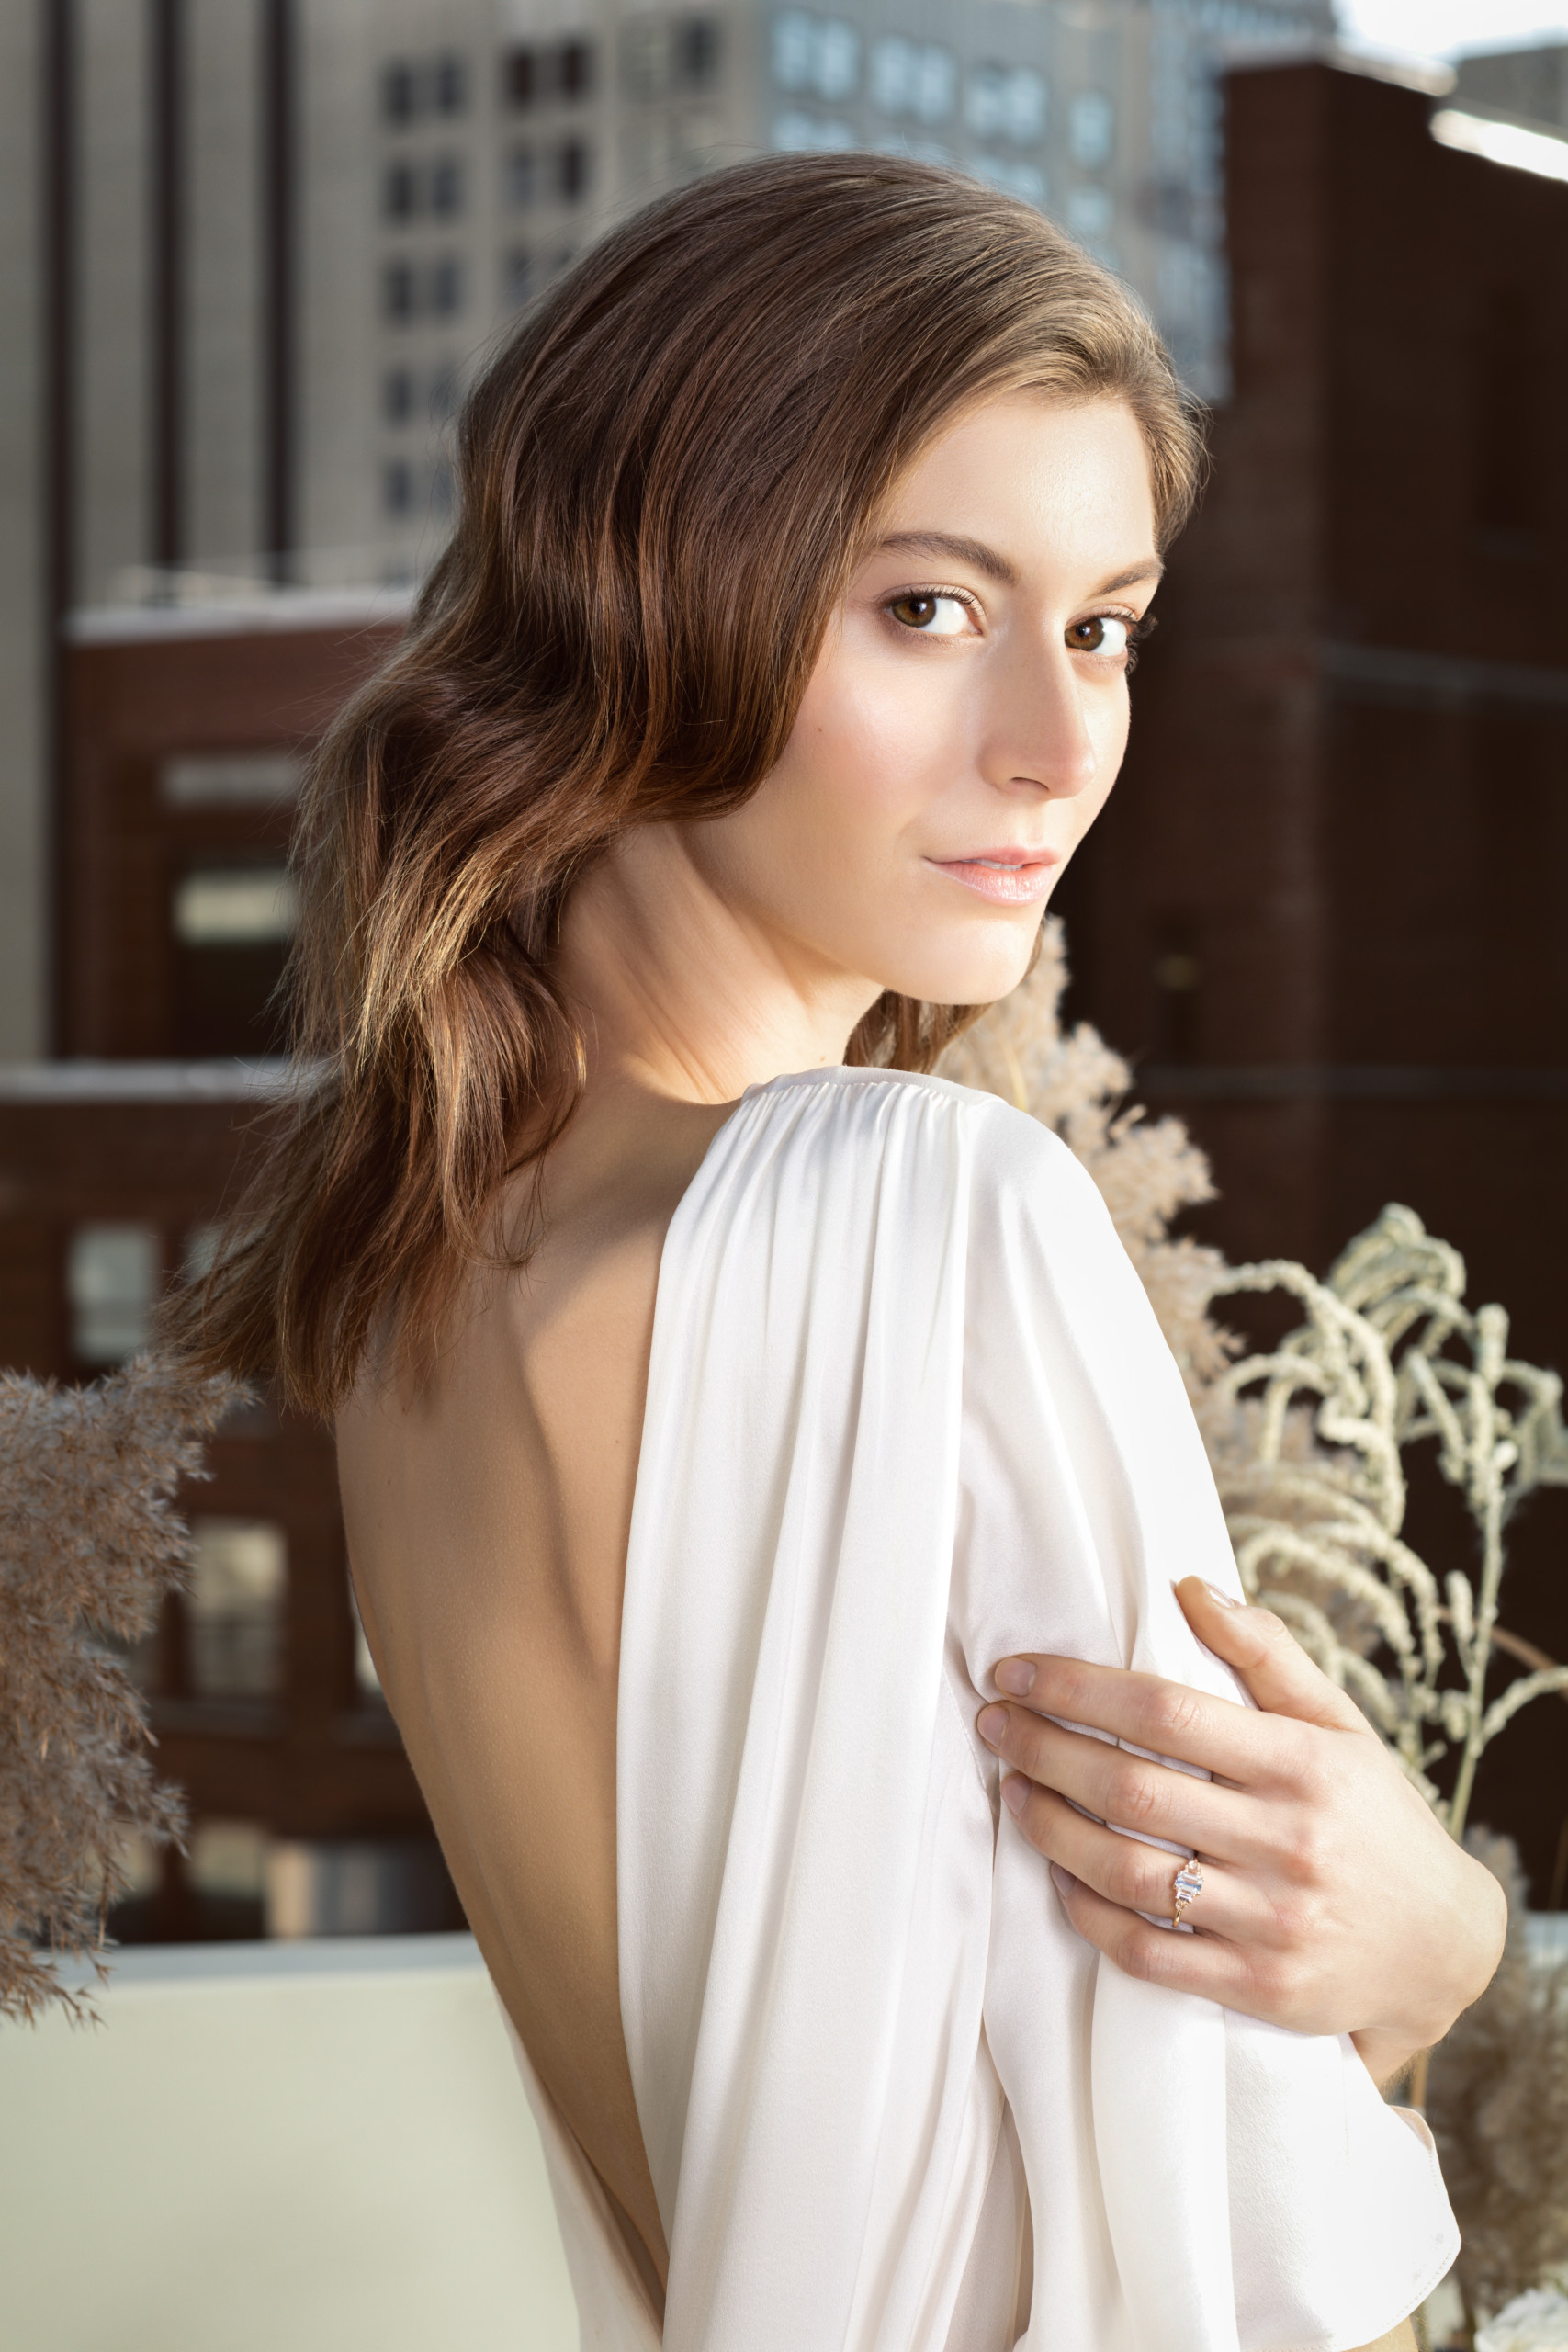 Bride with dramatic backless dress and very soft makeup and hair poses on Sofitel rooftop in New York City